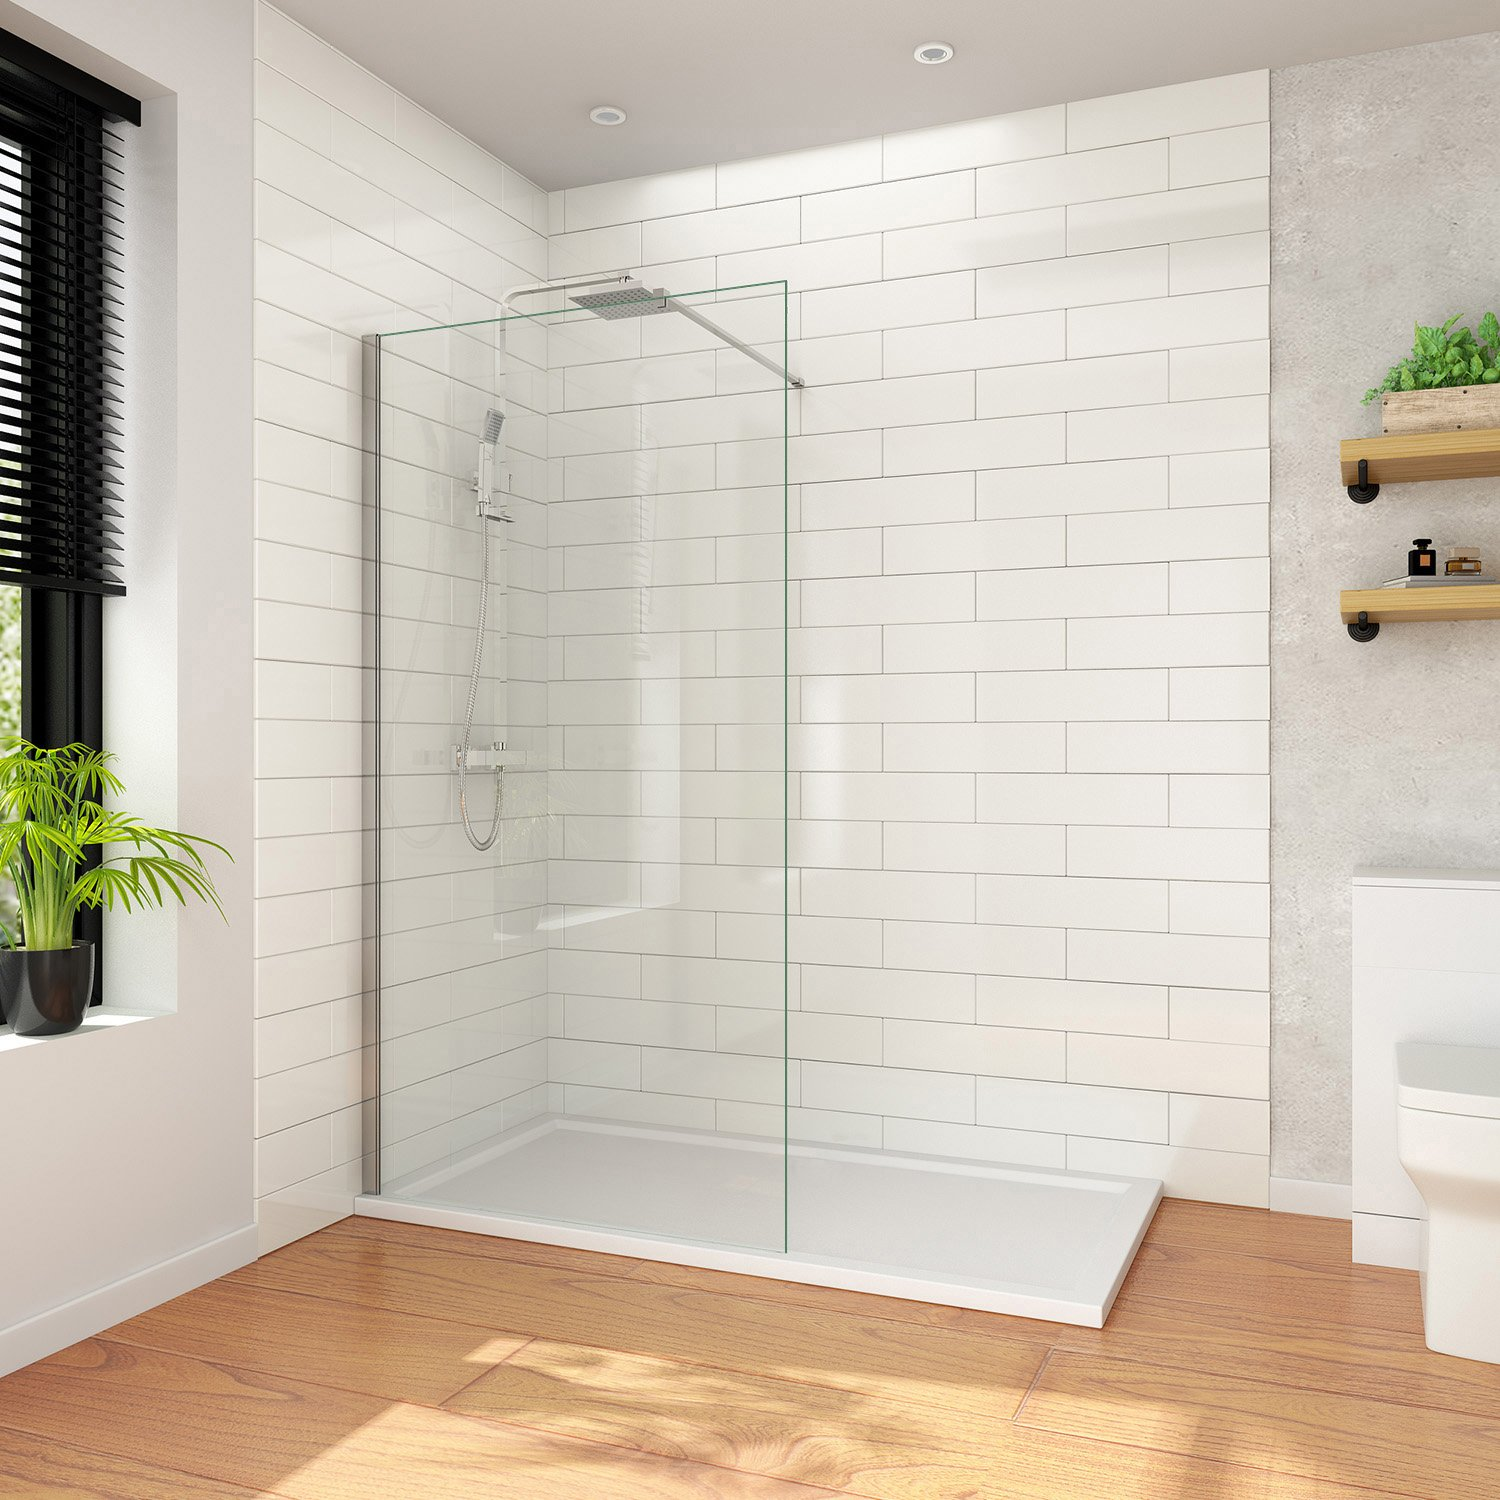 8mm Easy Clean Glass 1000mm ELEGANT 760mm Walk in Shower Enclosure 6mm Tempered Safety Glass Wetroom Shower Screen Panel